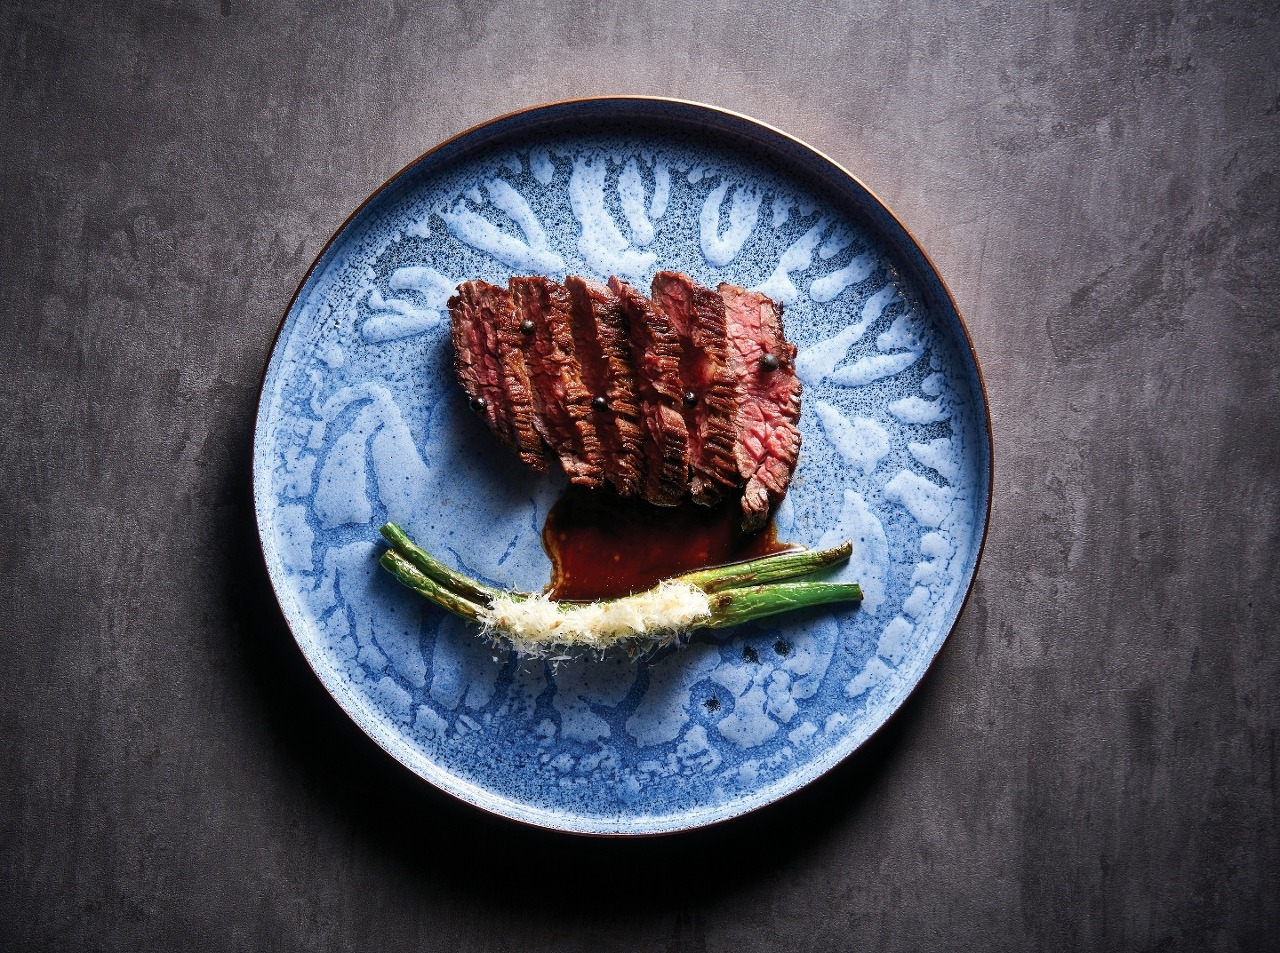 Smoked Skirt Steak with grilled garlic stems (Pic: RIPE)